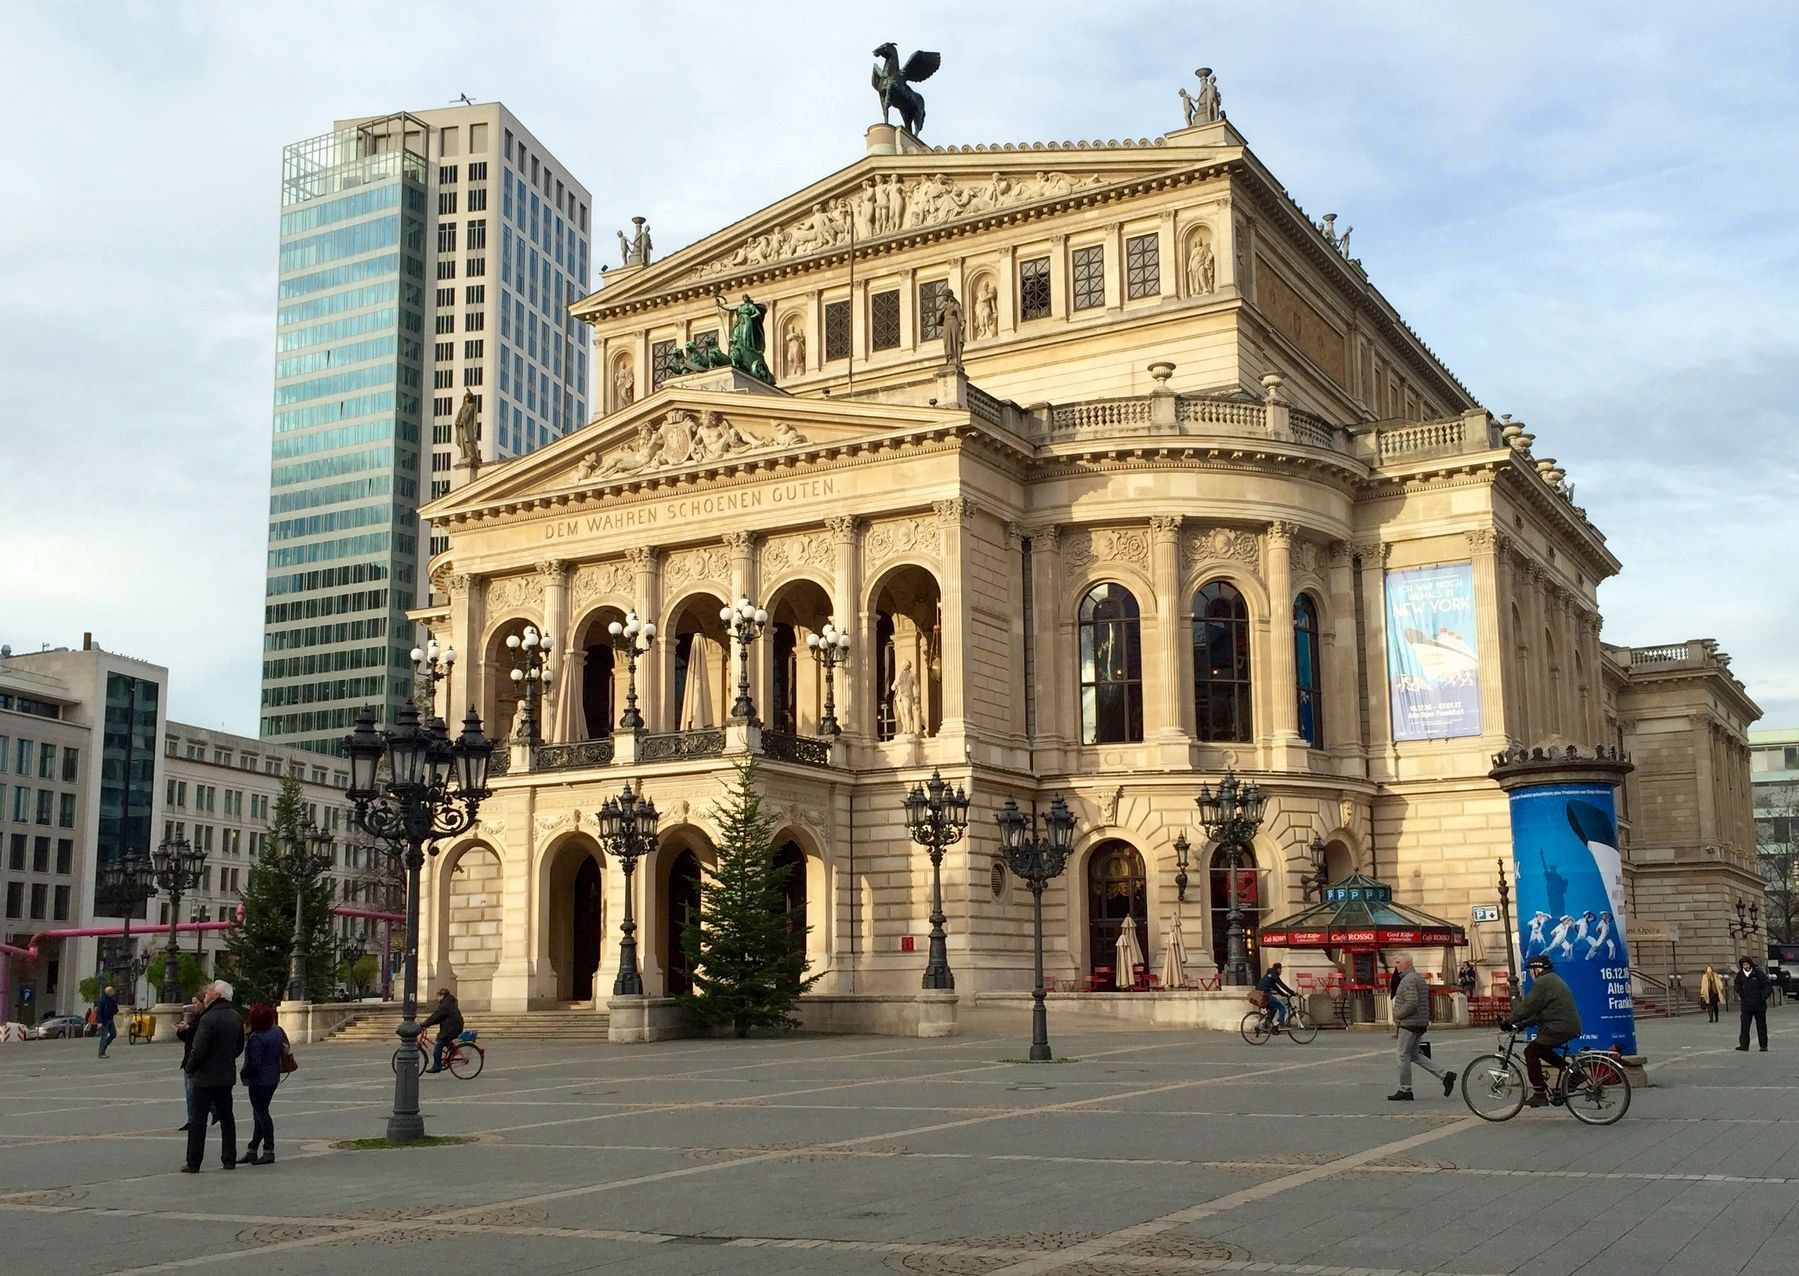 Alte Oper / The Old Opera House image, Touch for more information